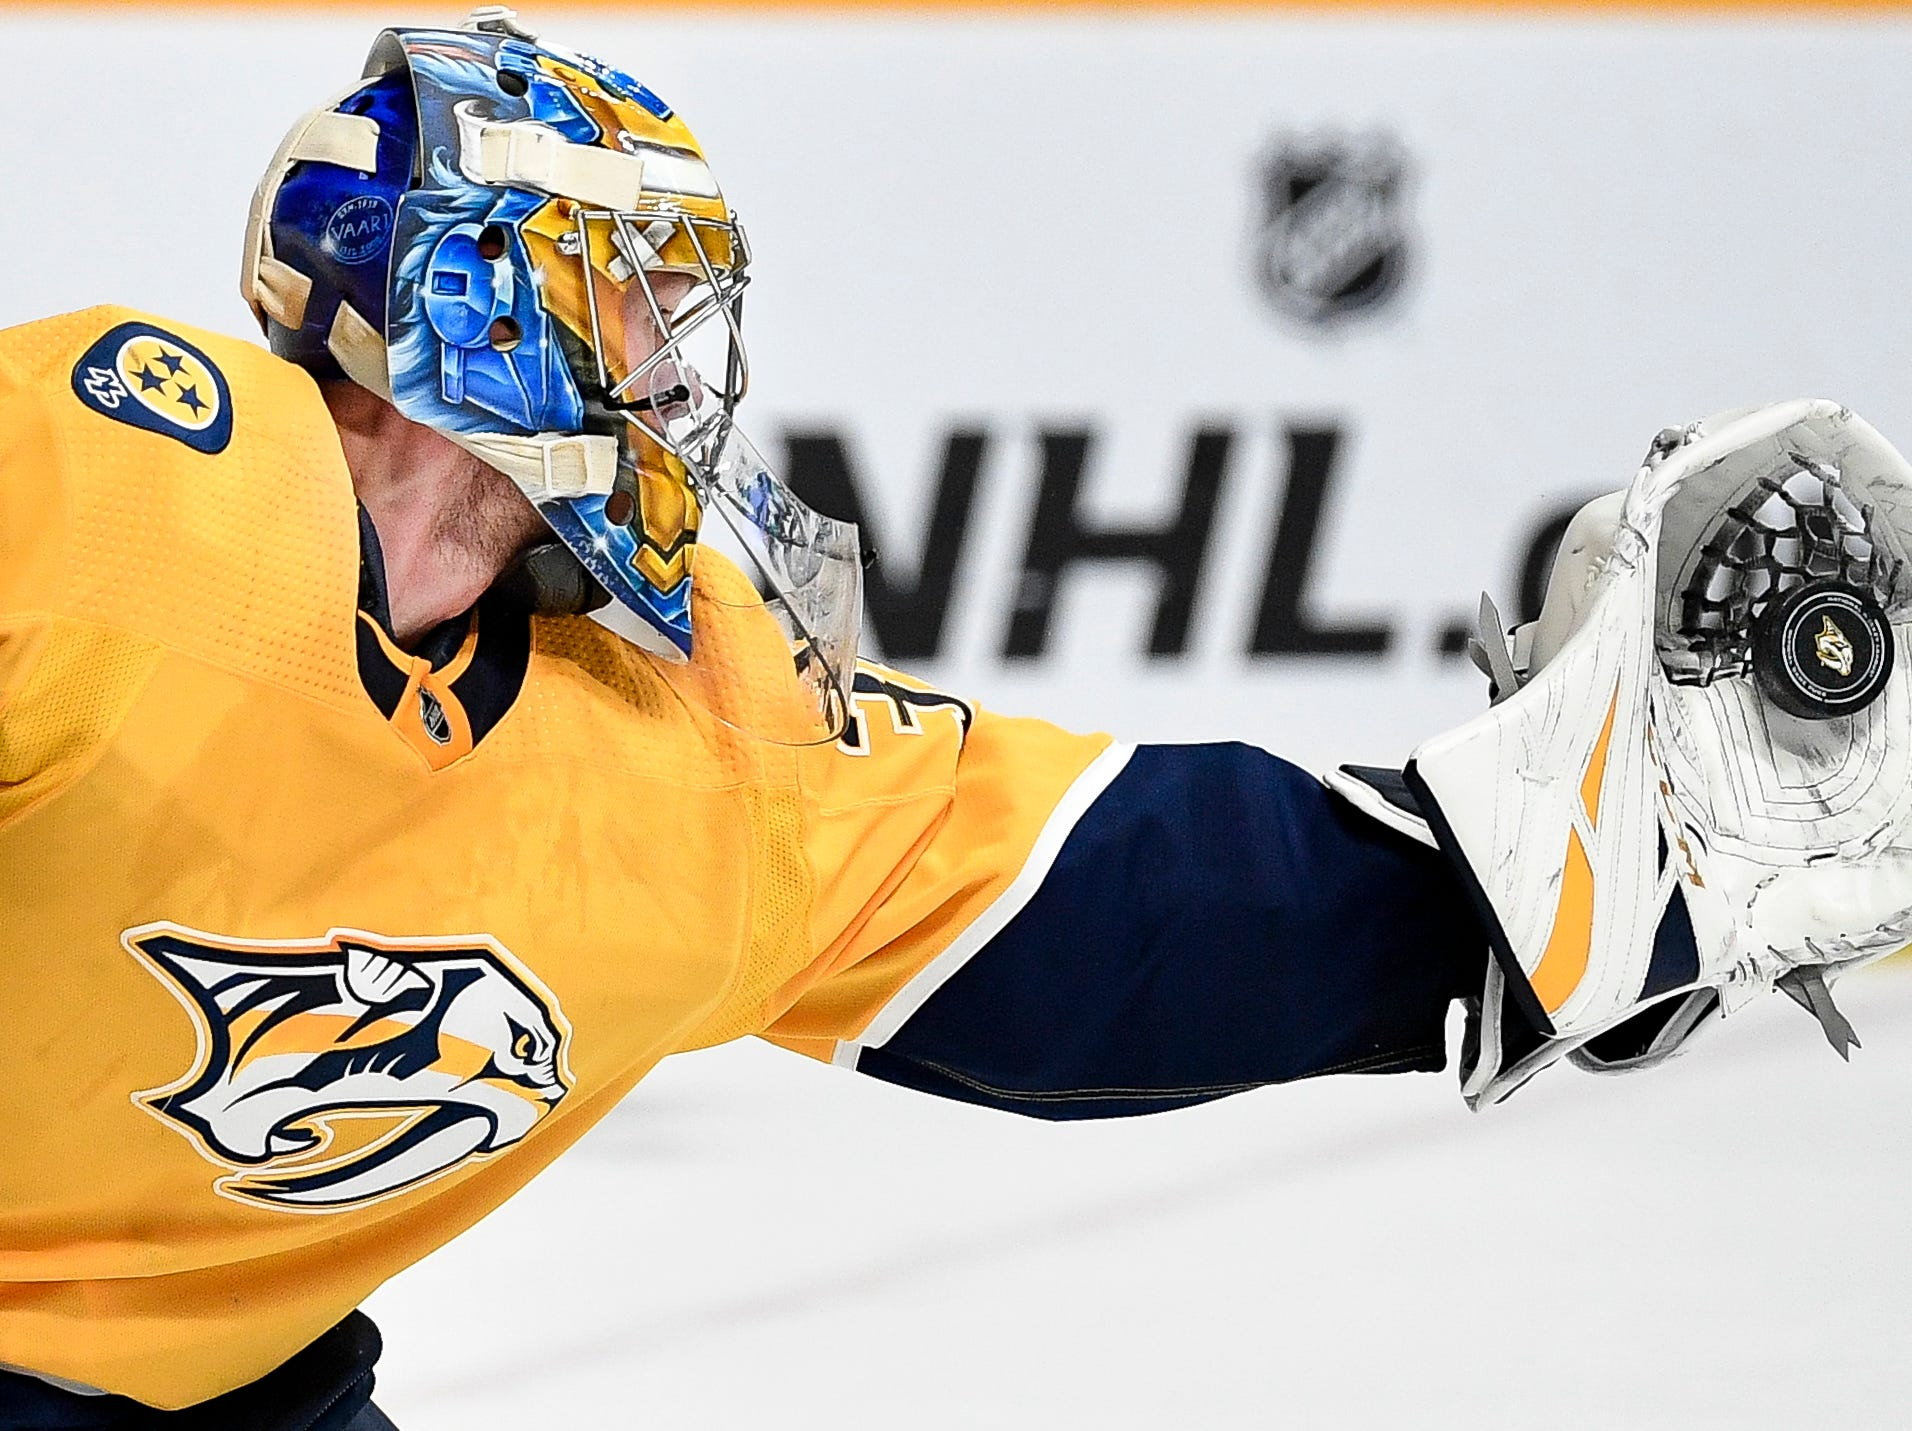 Nashville Predators goaltender Pekka Rinne (35) makes a save against the Winnipeg Jets during the second period at Bridgestone Arena in Nashville, Tenn., Thursday, Jan. 17, 2019.